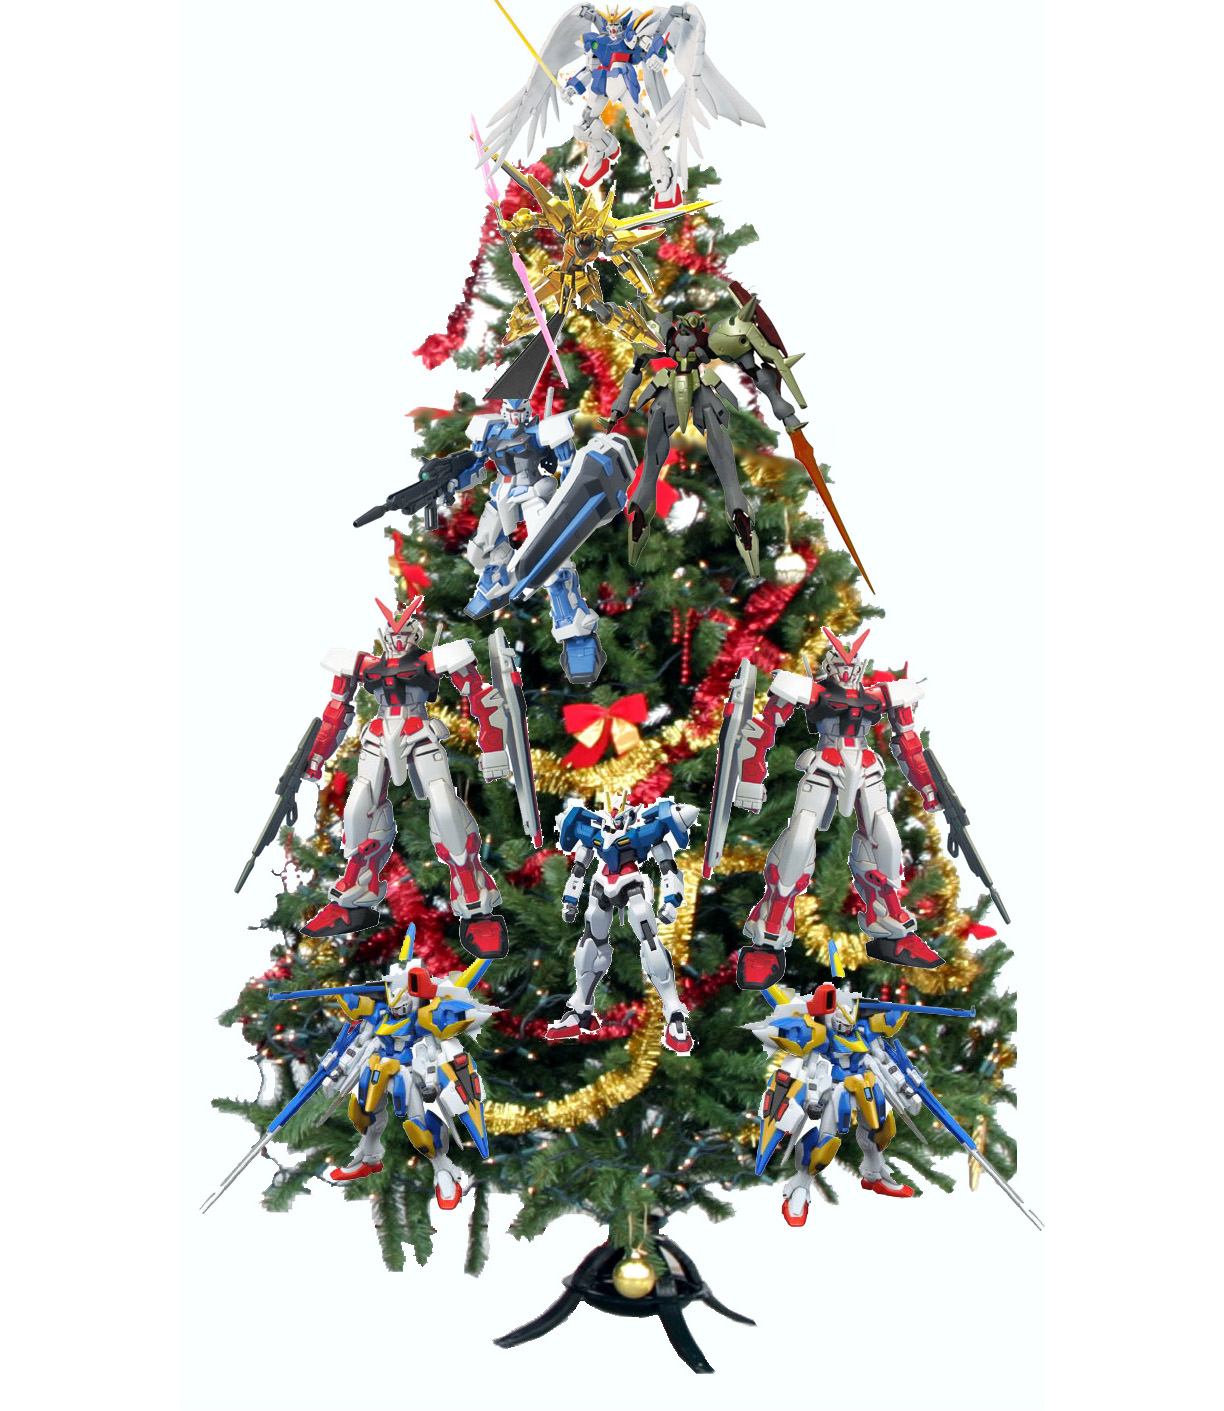 ���� ��������� 2013-��� ����� 2013 gundam_christmas_tree-752167.jpg